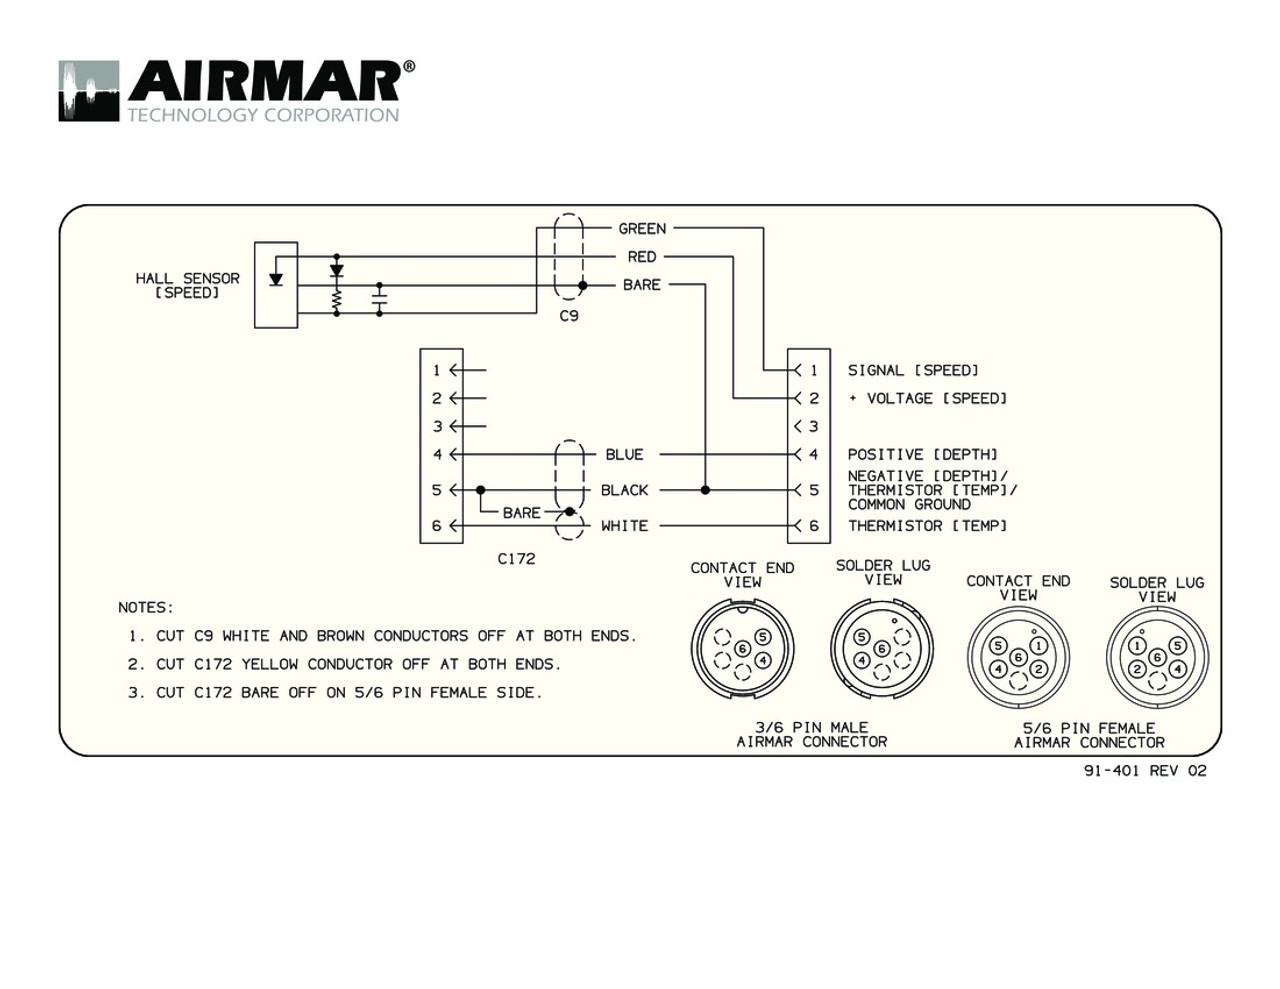 Garmin 4 Pin Wiring Diagram Libraries 696 Airmar 6 S Blue Bottle Marinespeed Sensor With Y Cable